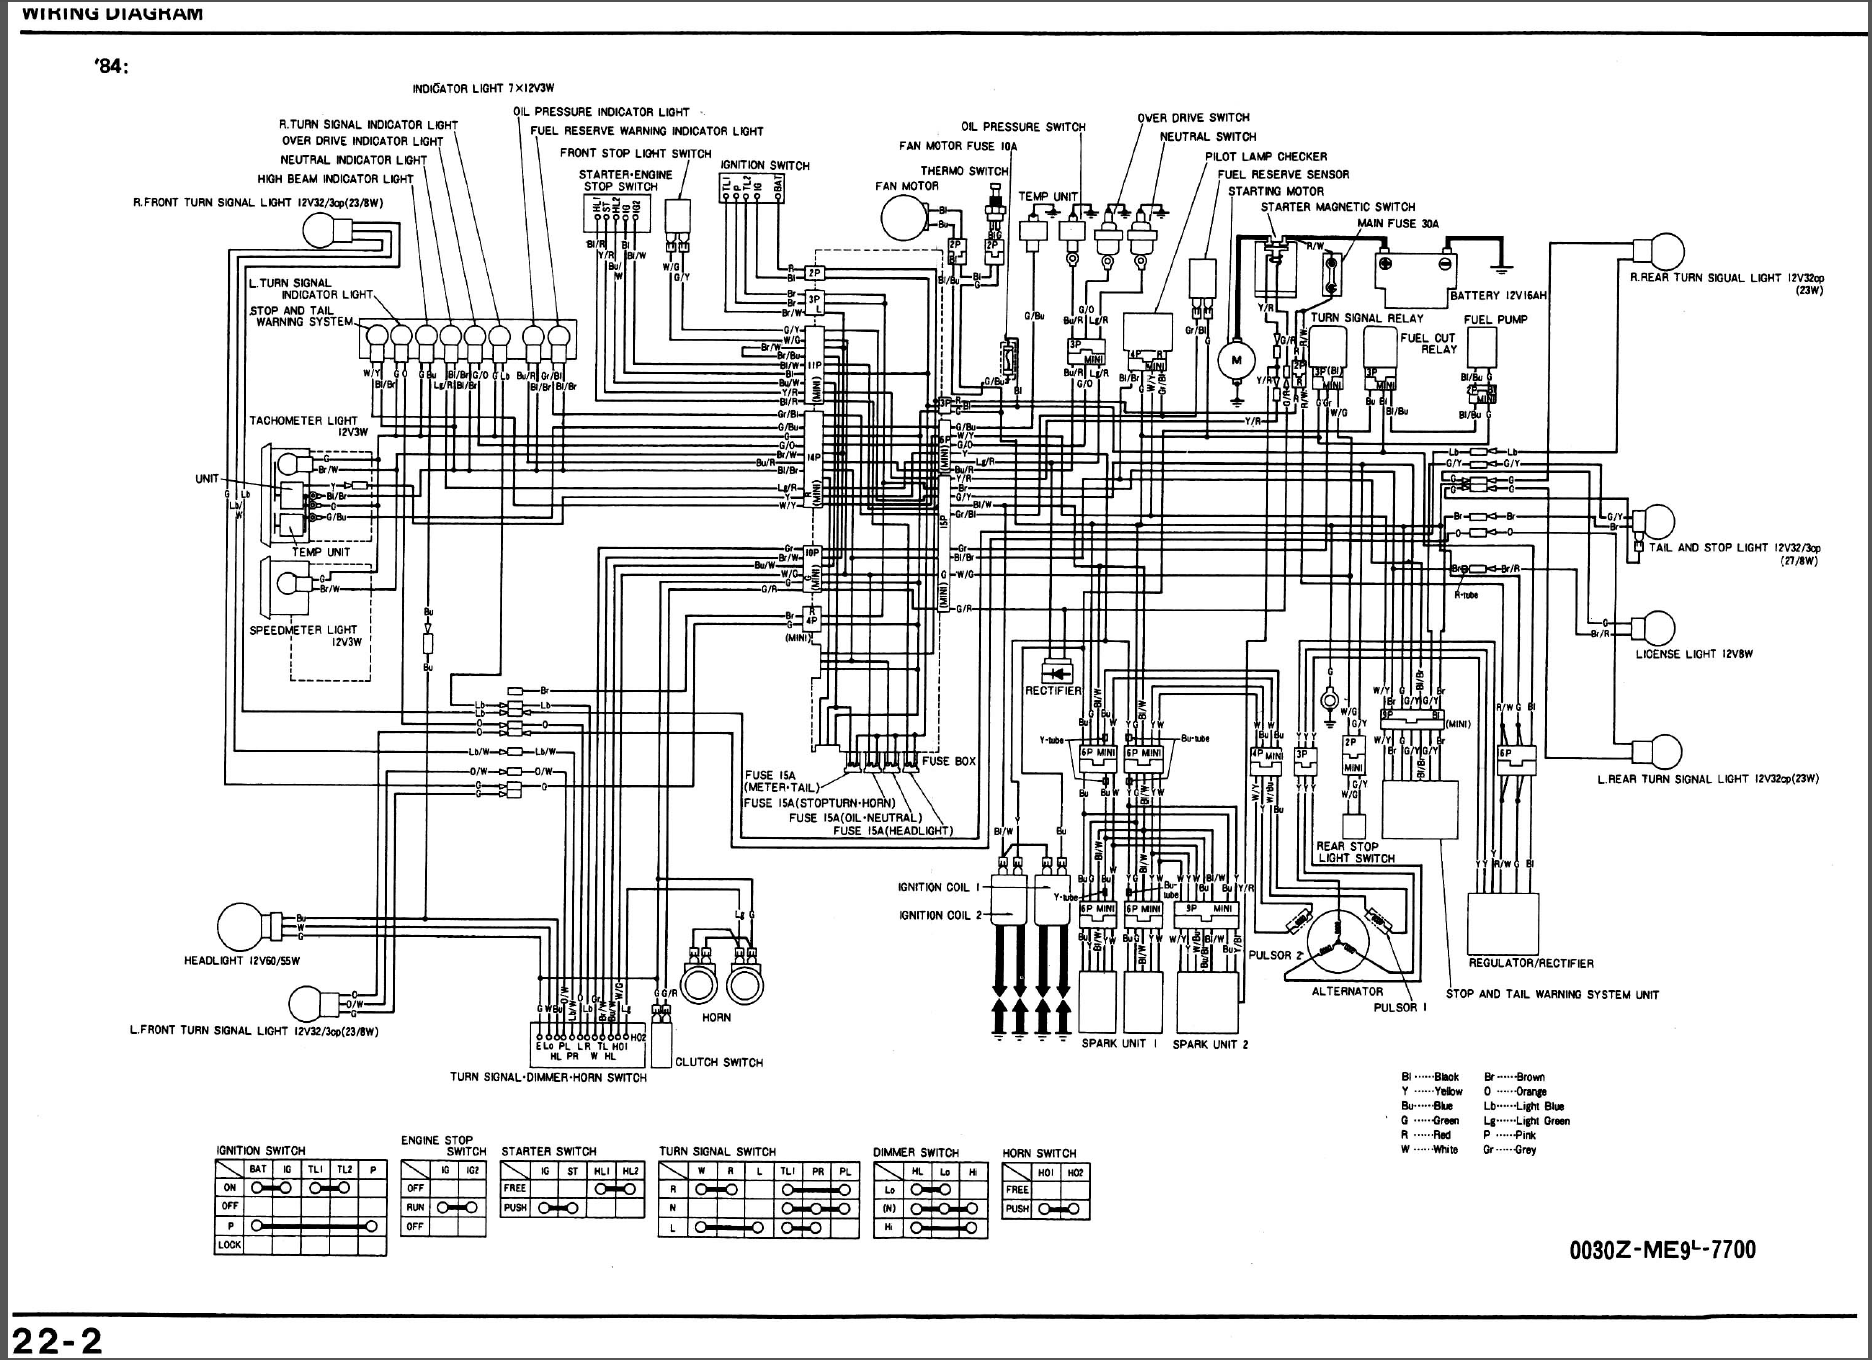 1984 honda shadow 700 wireing diagram b png views 7686 size 1 01 mb